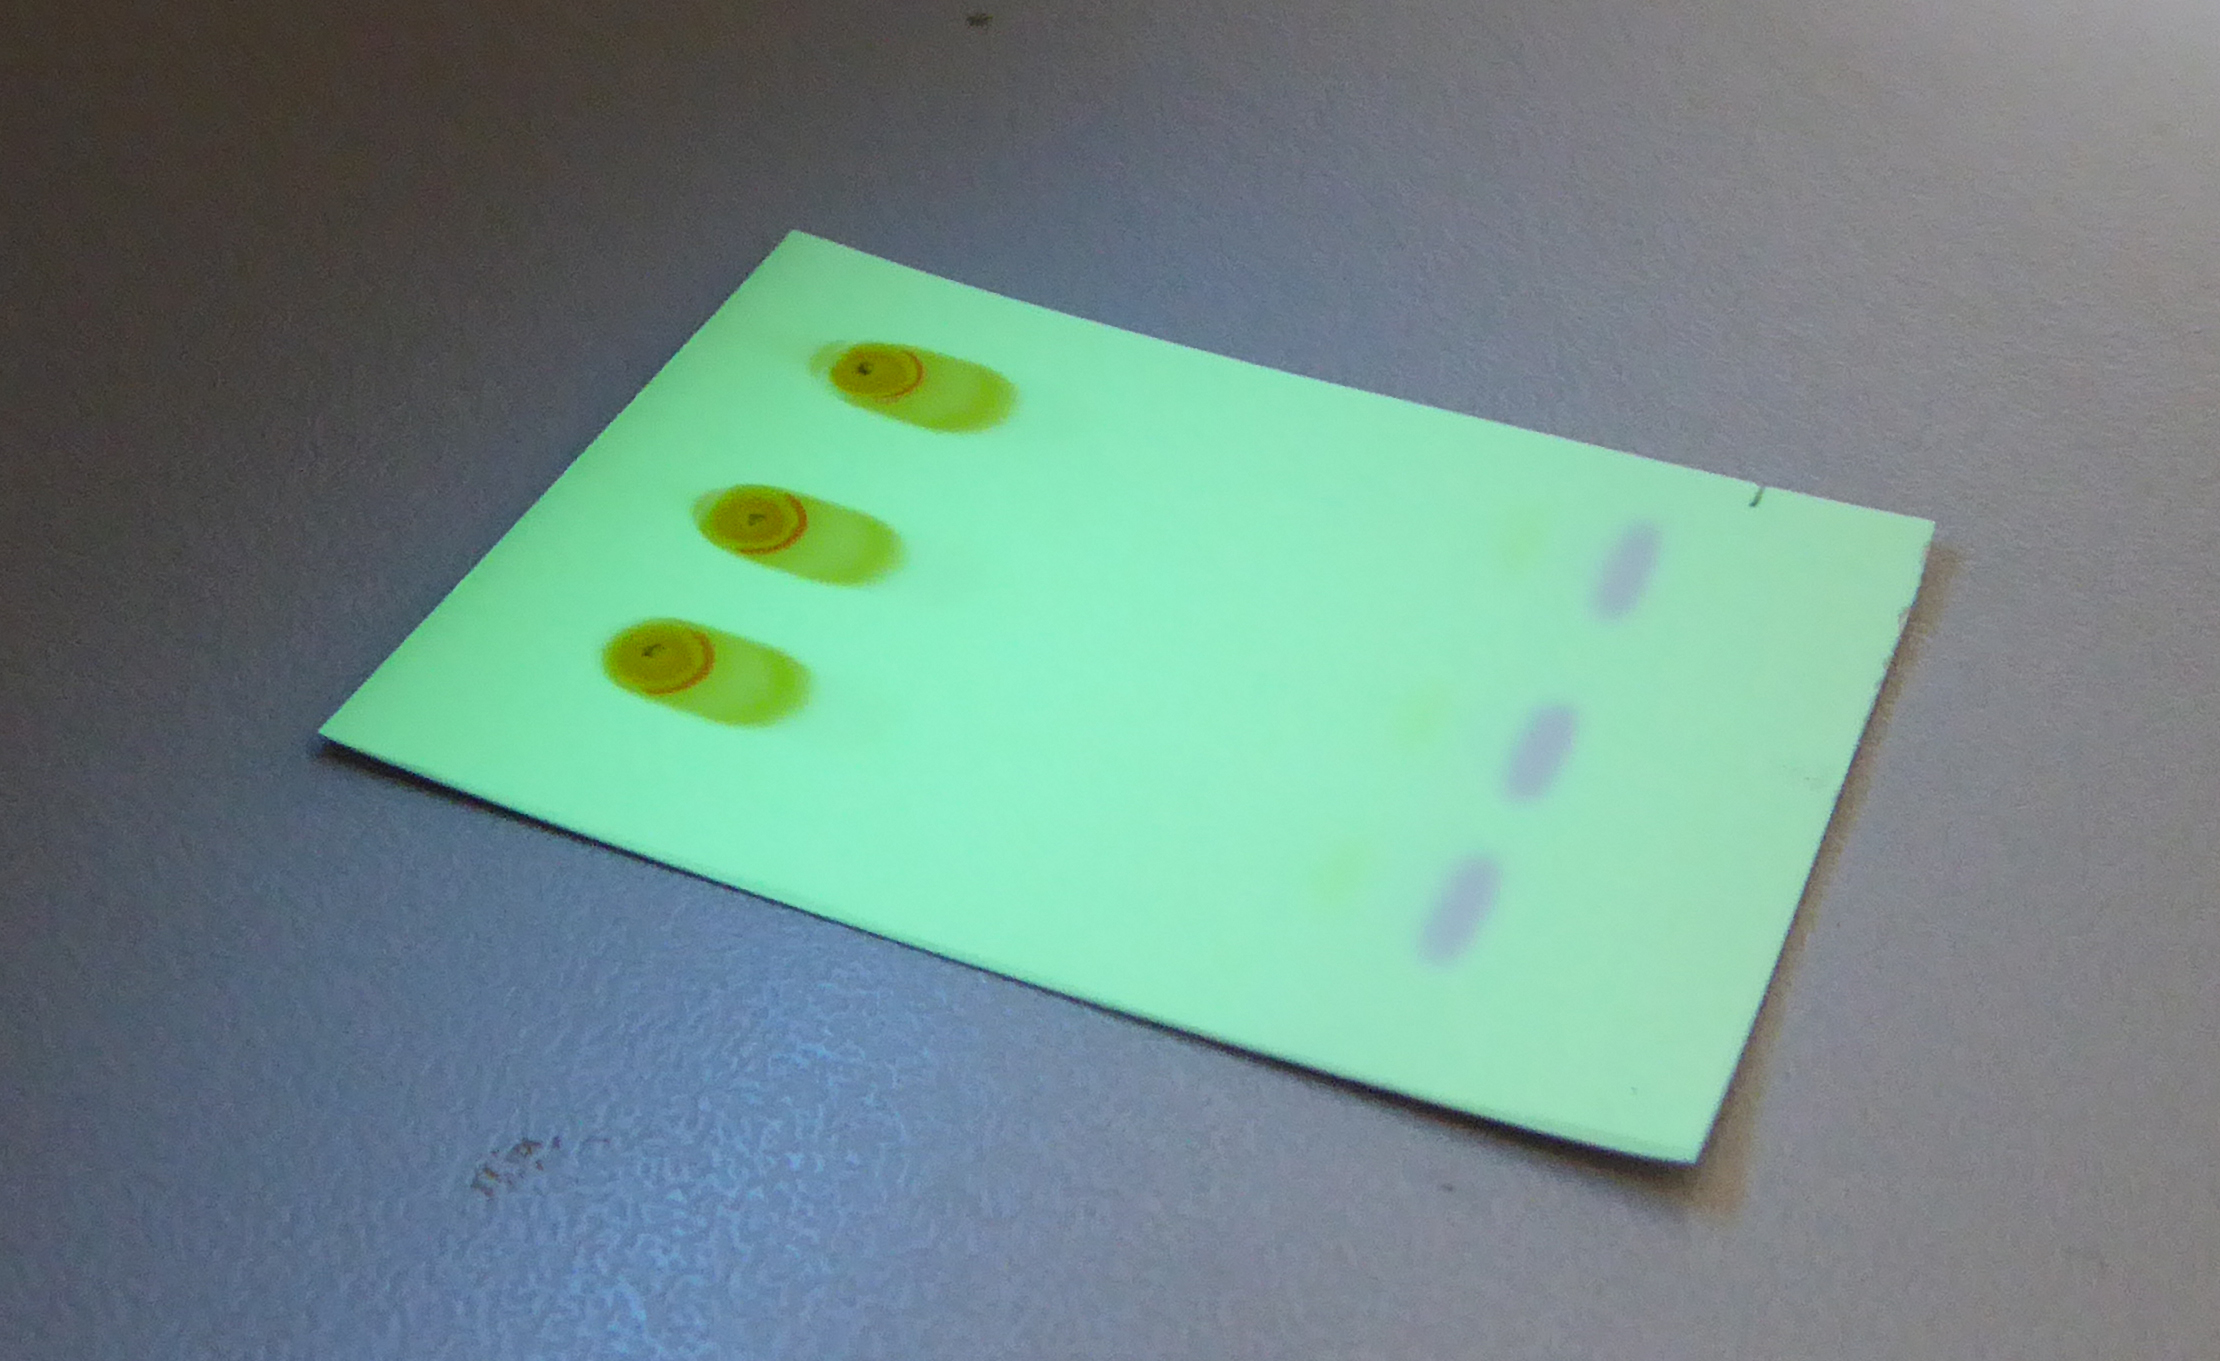 spots on a TLC plate viewed under UV light